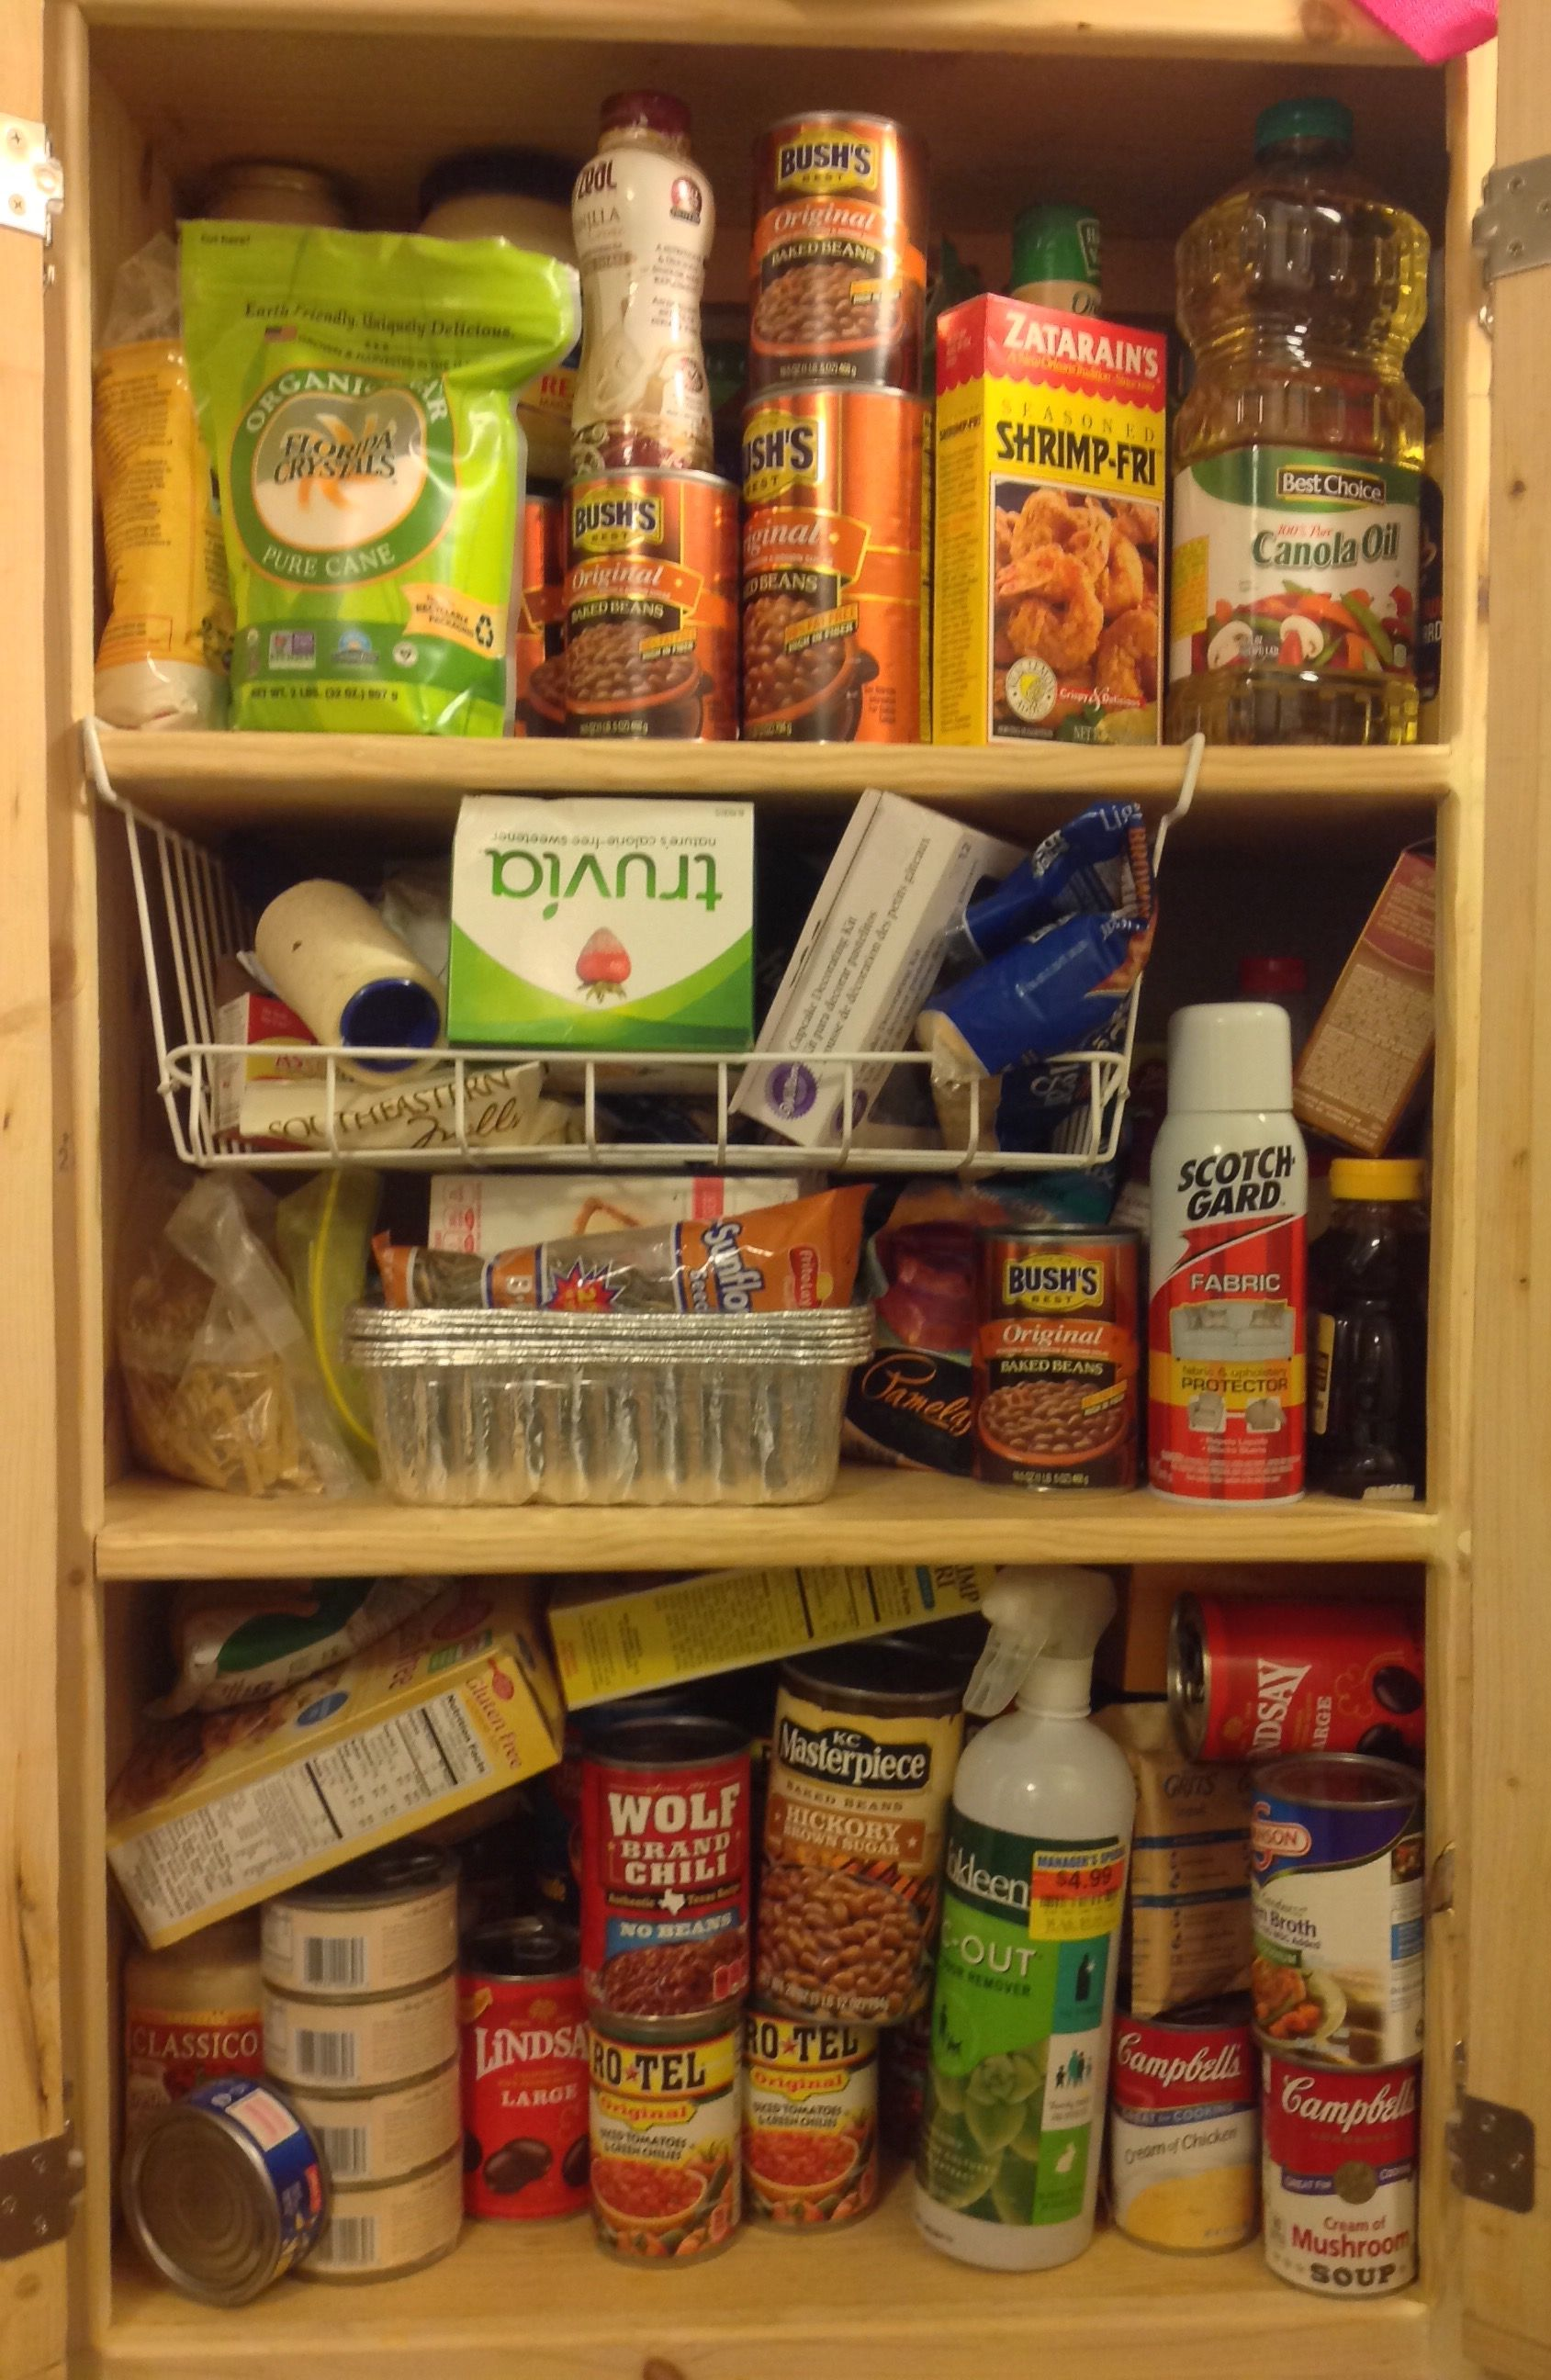 This is part of the hall pantry... we don't have much storage space so everything is jammed in and jumbled up. Watch for the after picture :)